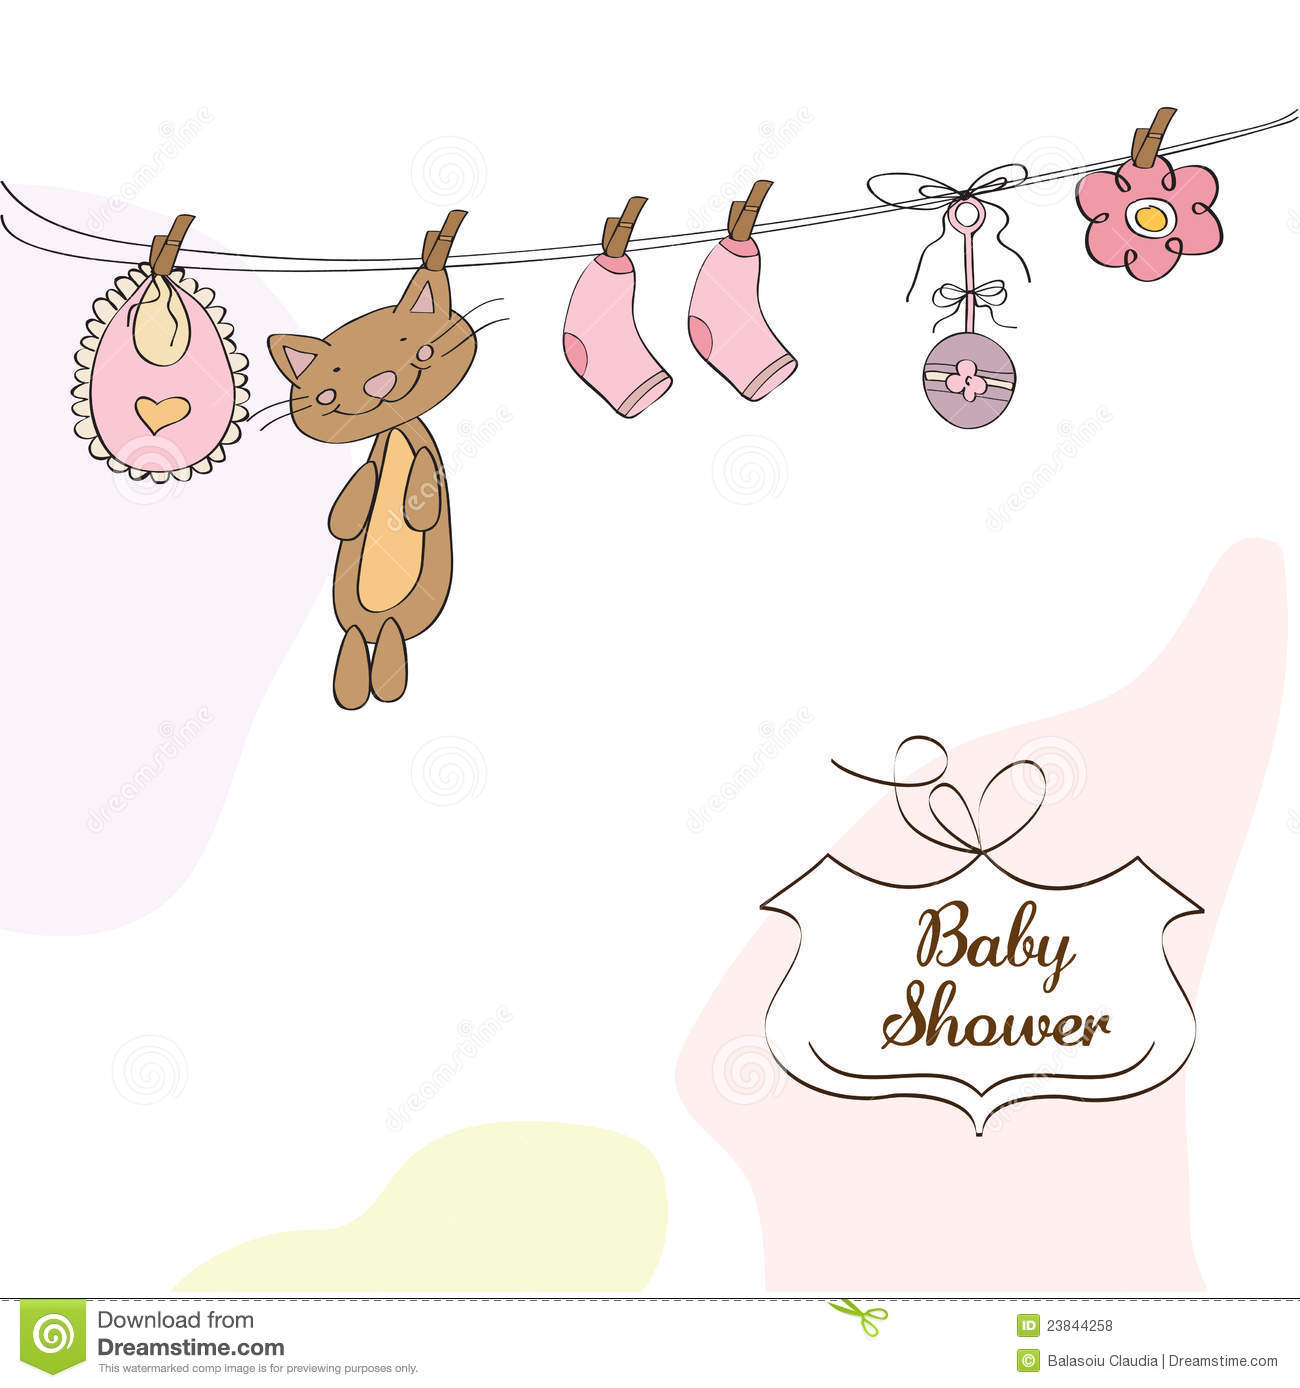 Baby Girl Shower Invitation Card Stock Vector Illustration Of - Baby shower invitations templates download free